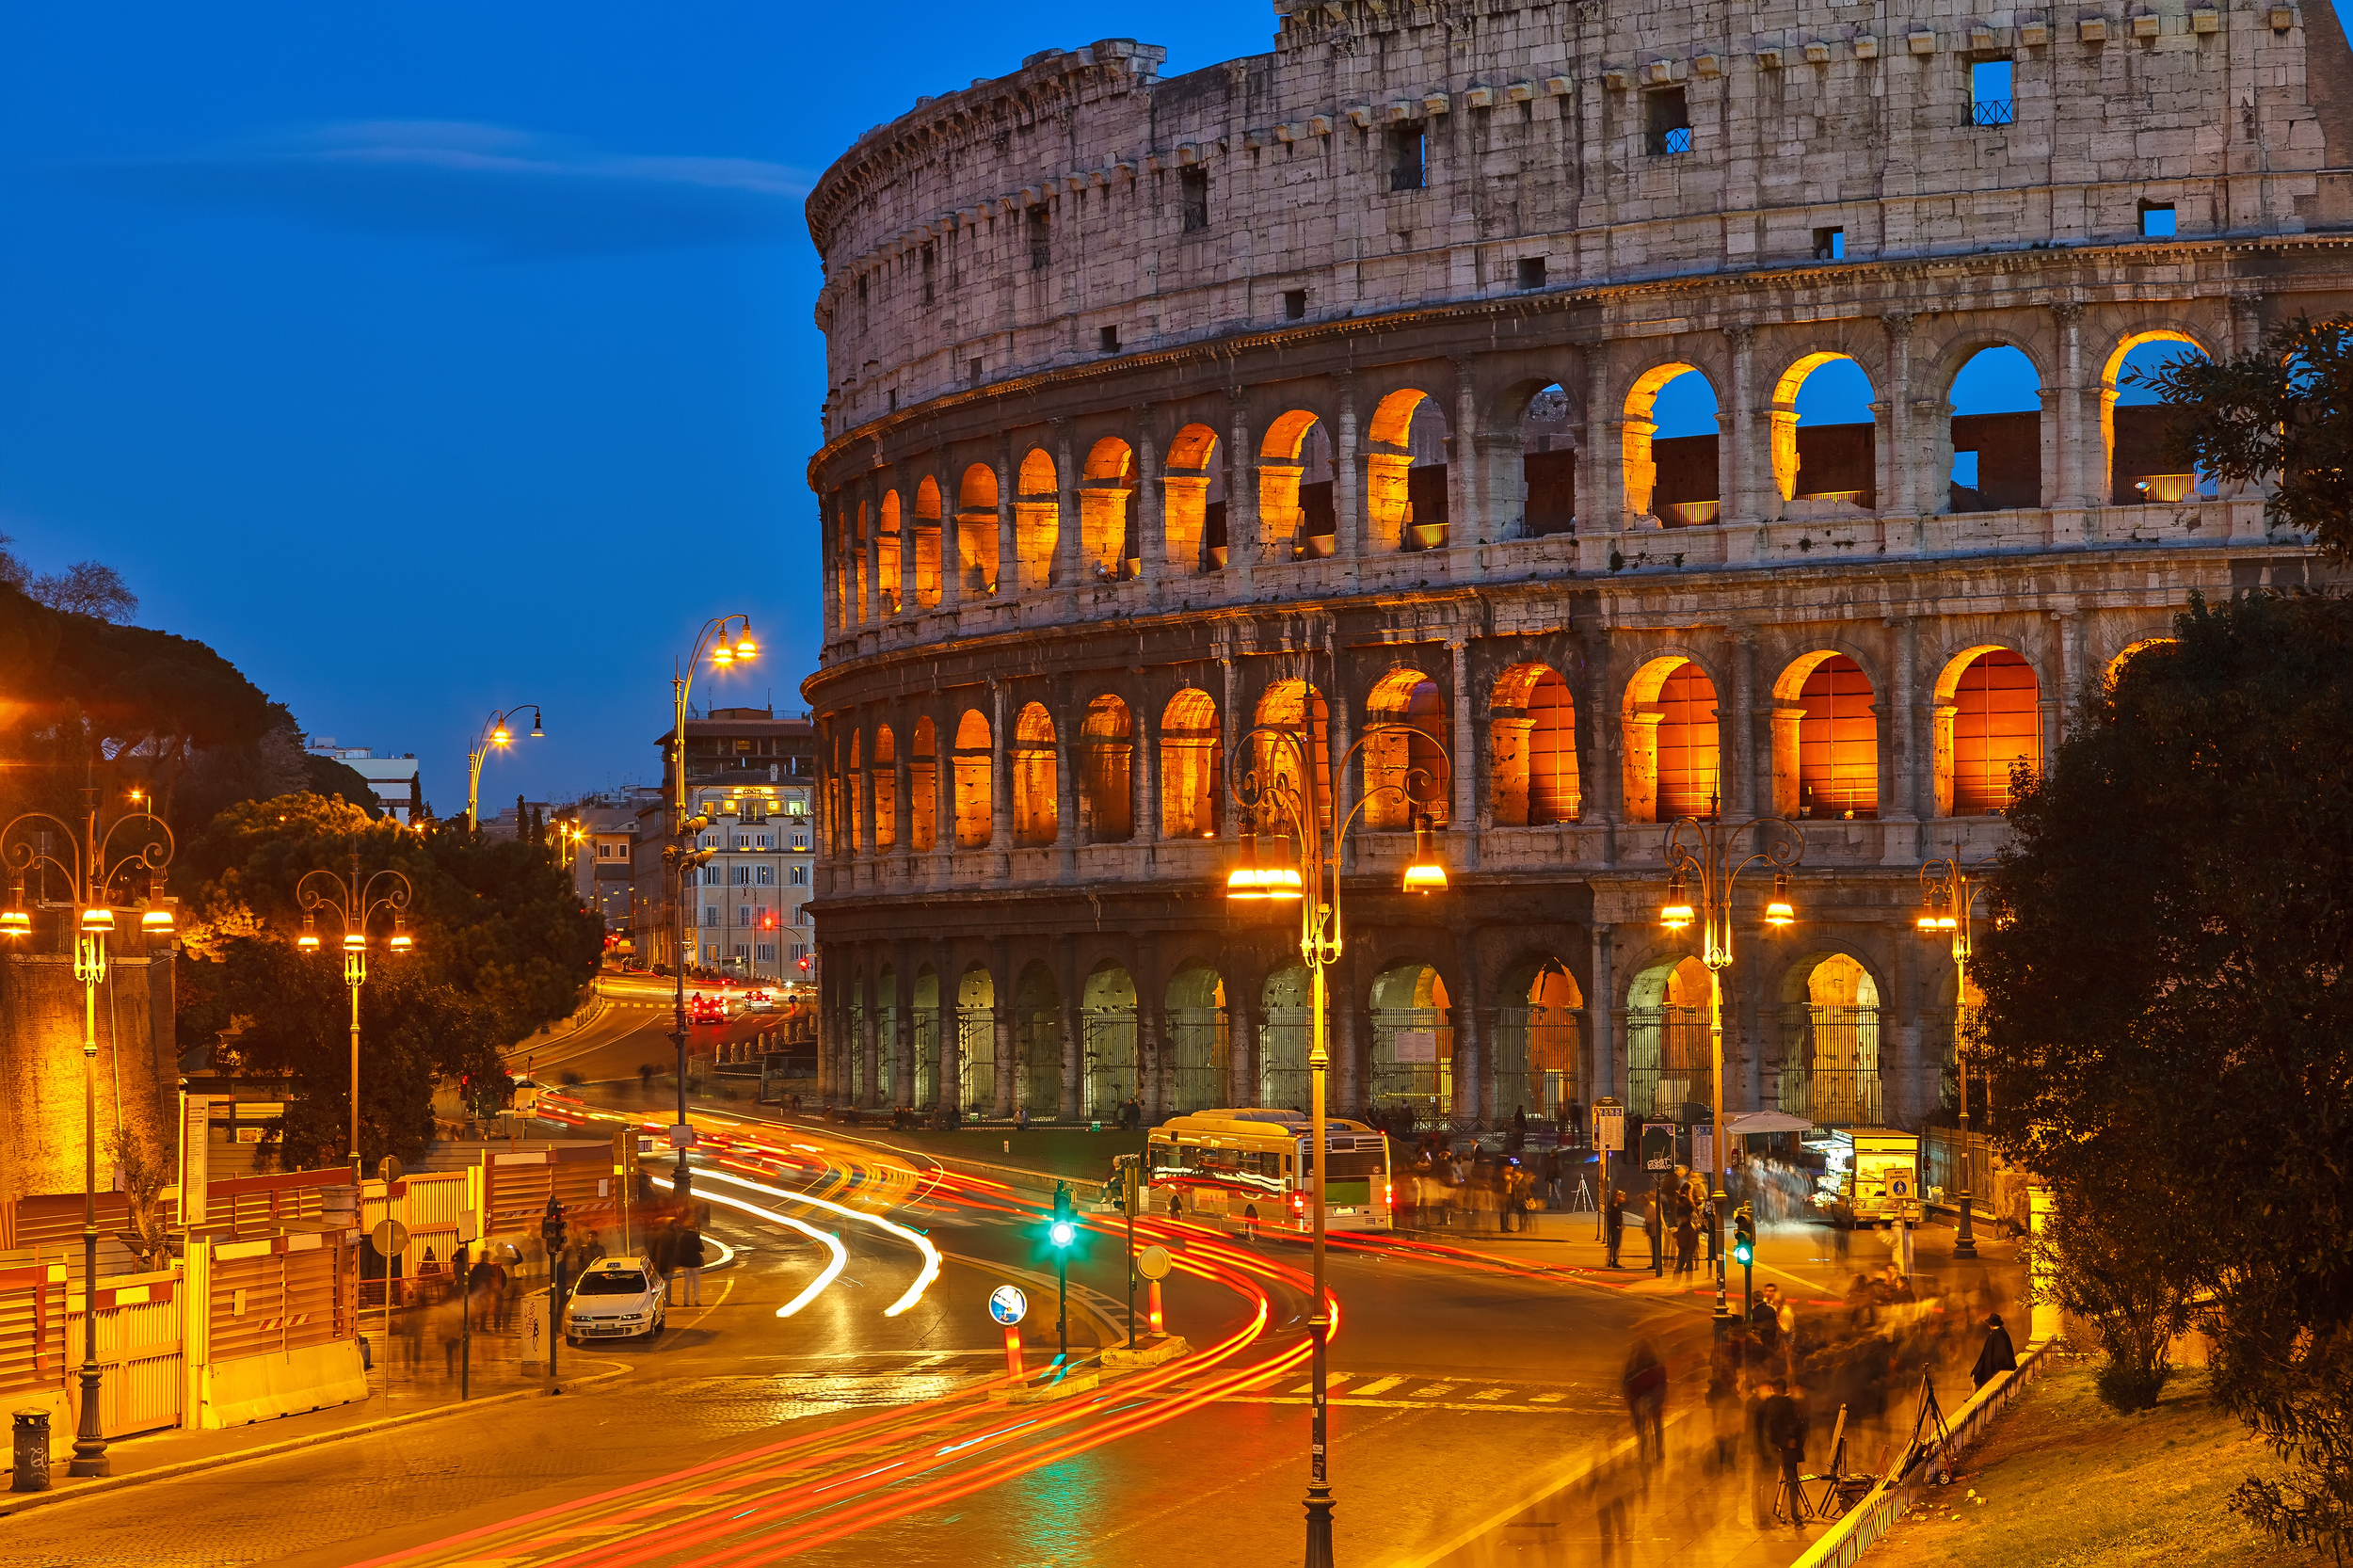 Night View of Colosseum in Rome